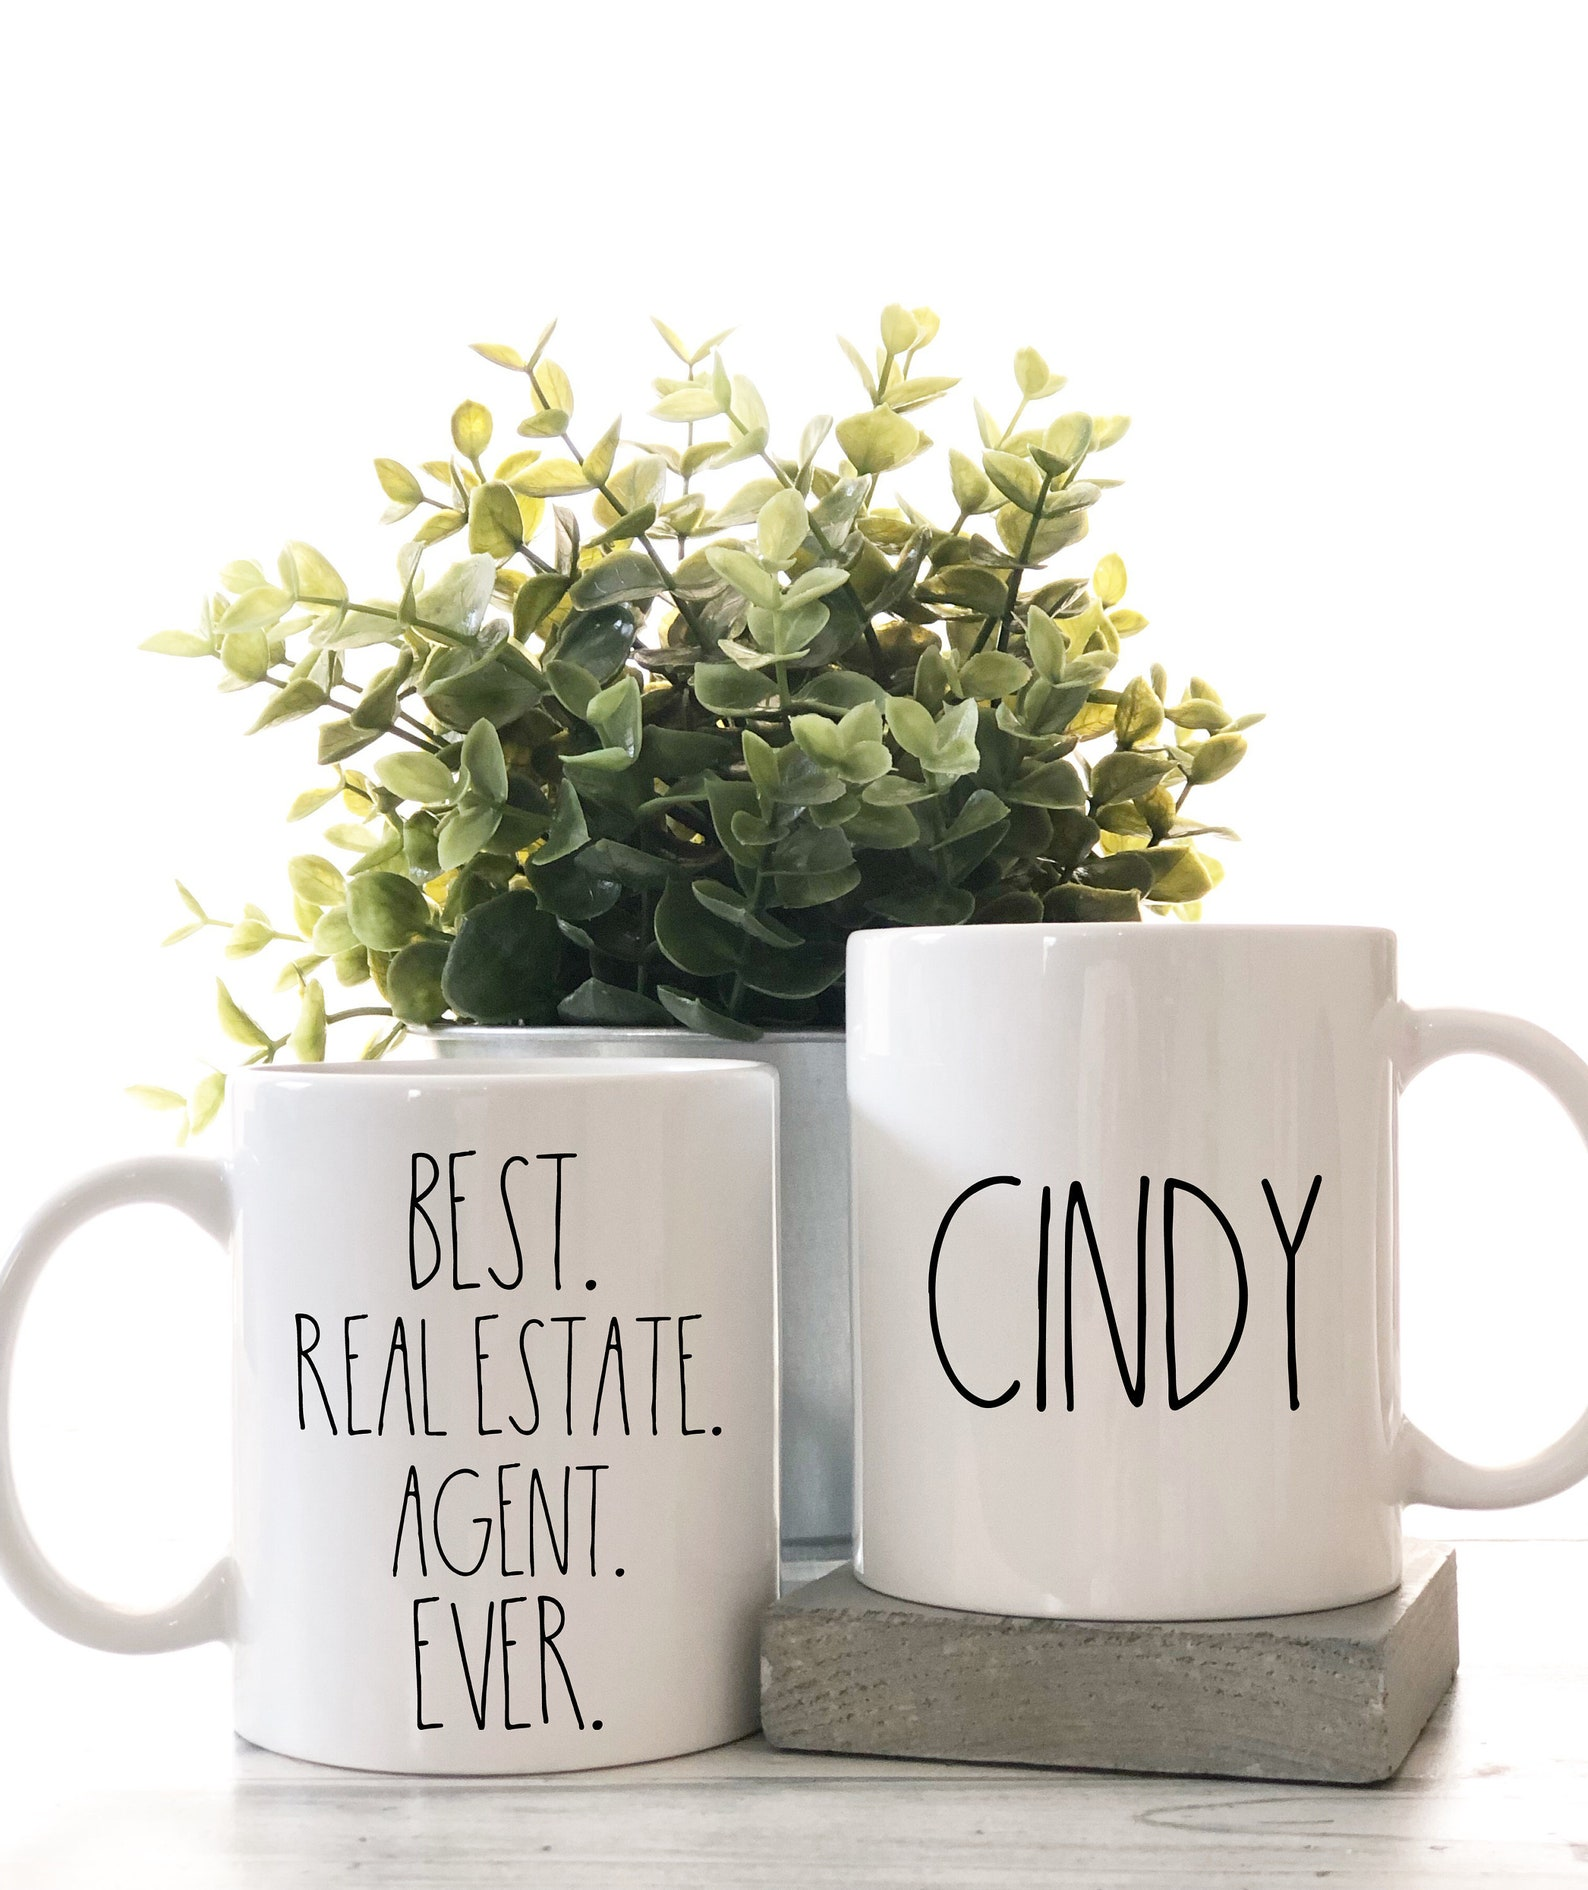 Best Real Estate Agent Ever Coffee Mug